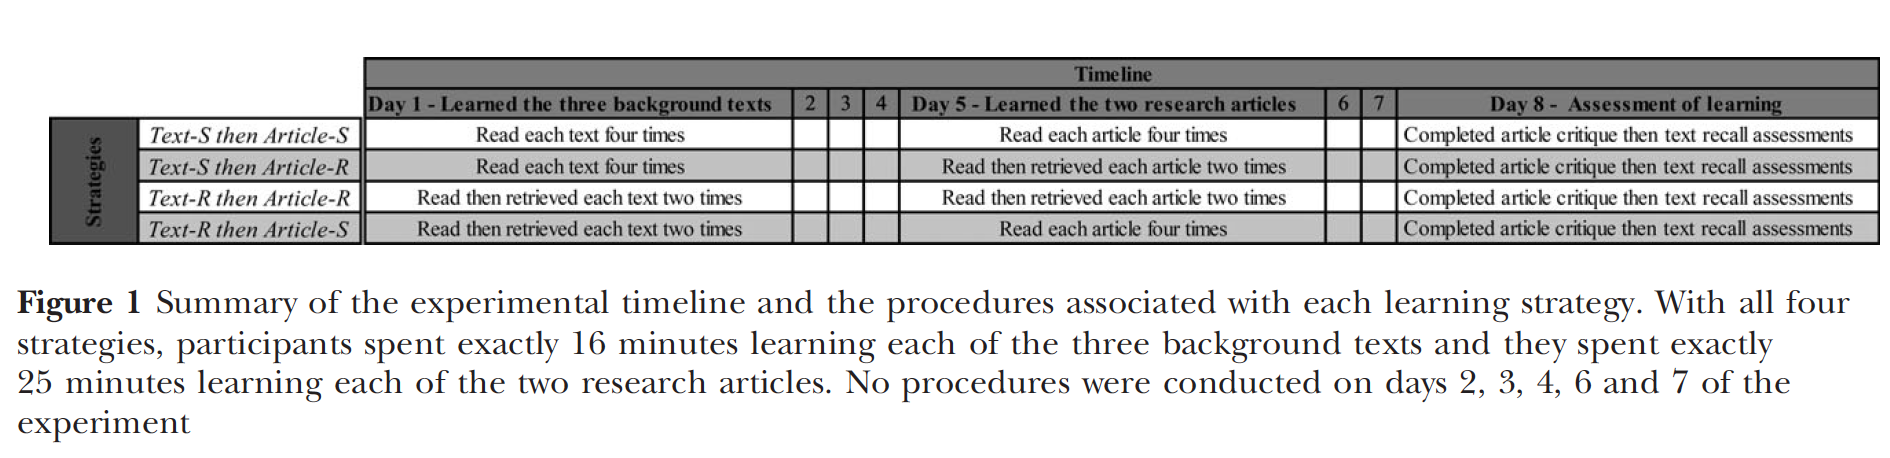 Image from Dobson, Linderholm, & Perez (2018)